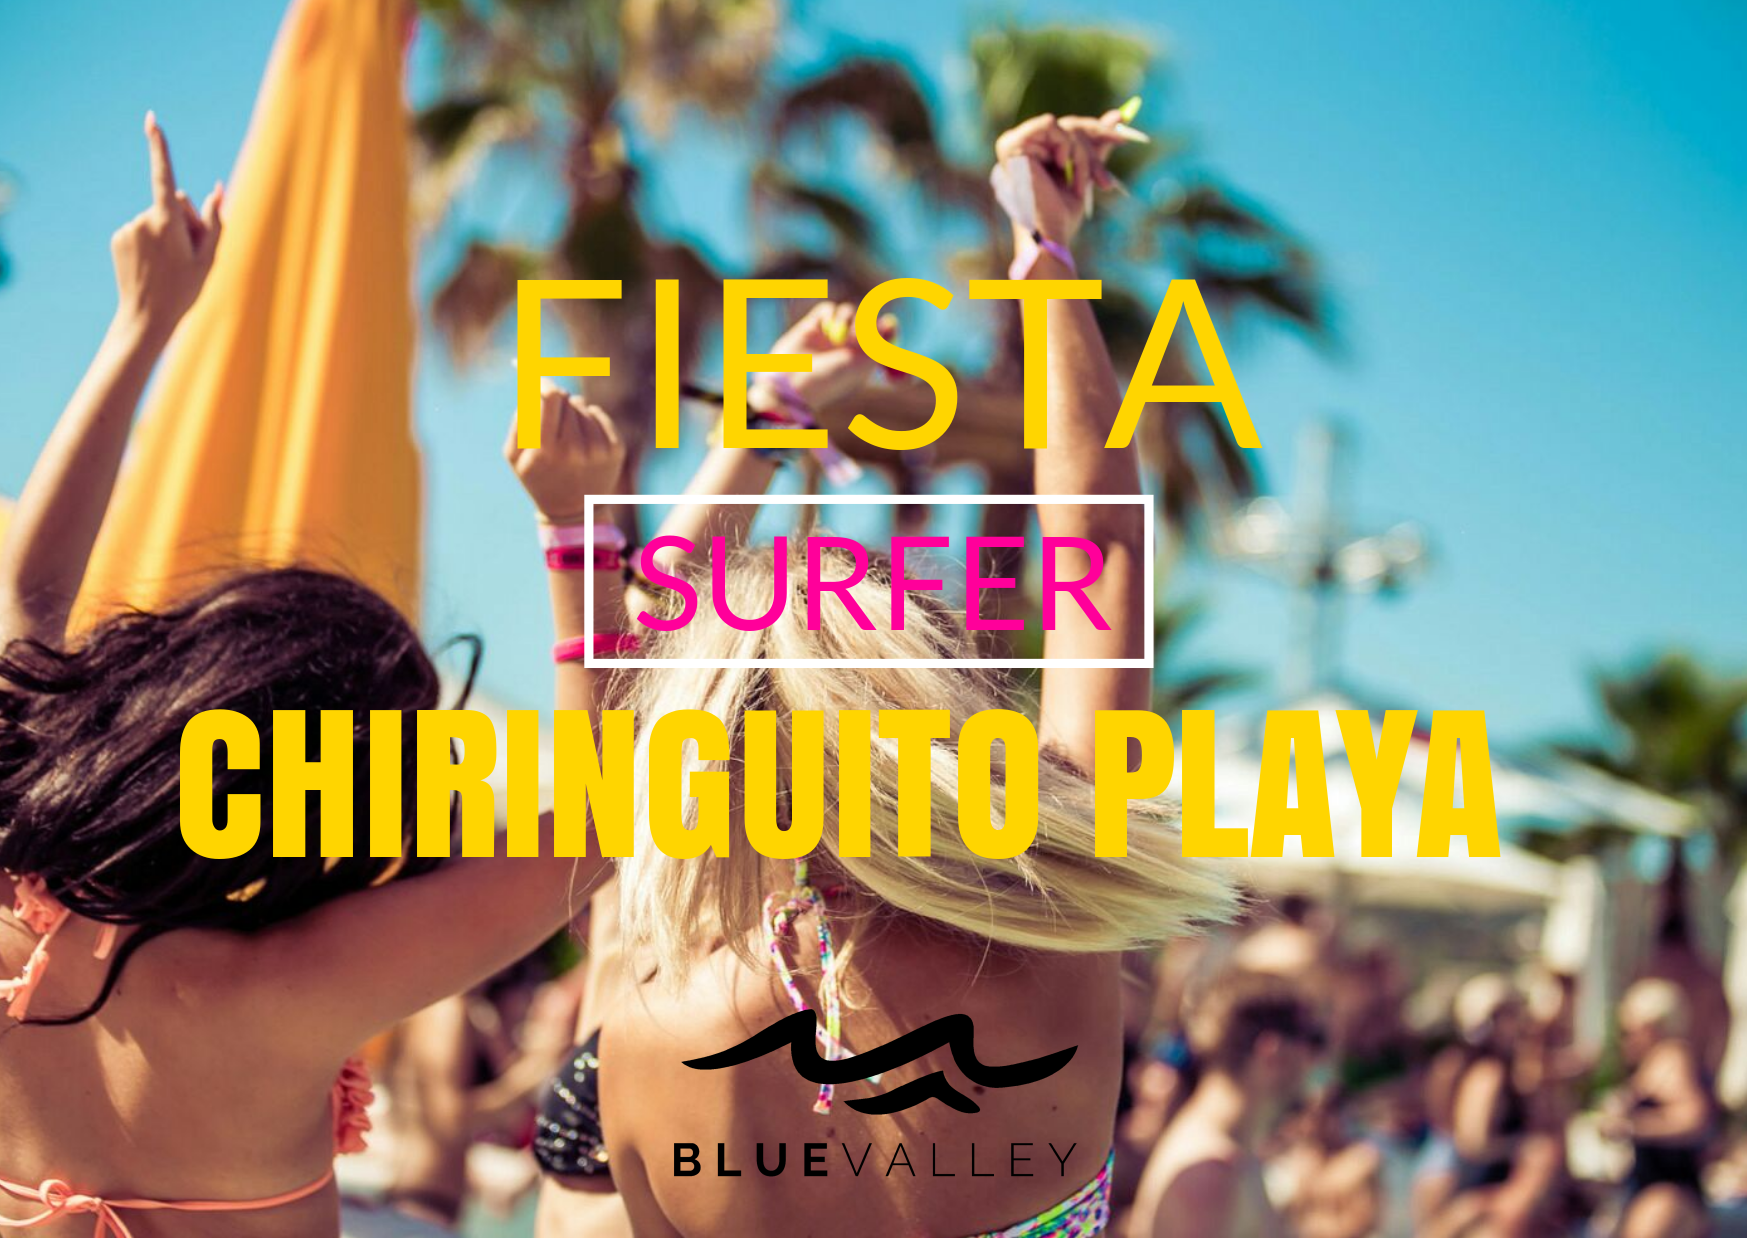 Fiesta chiringuito playa alicante